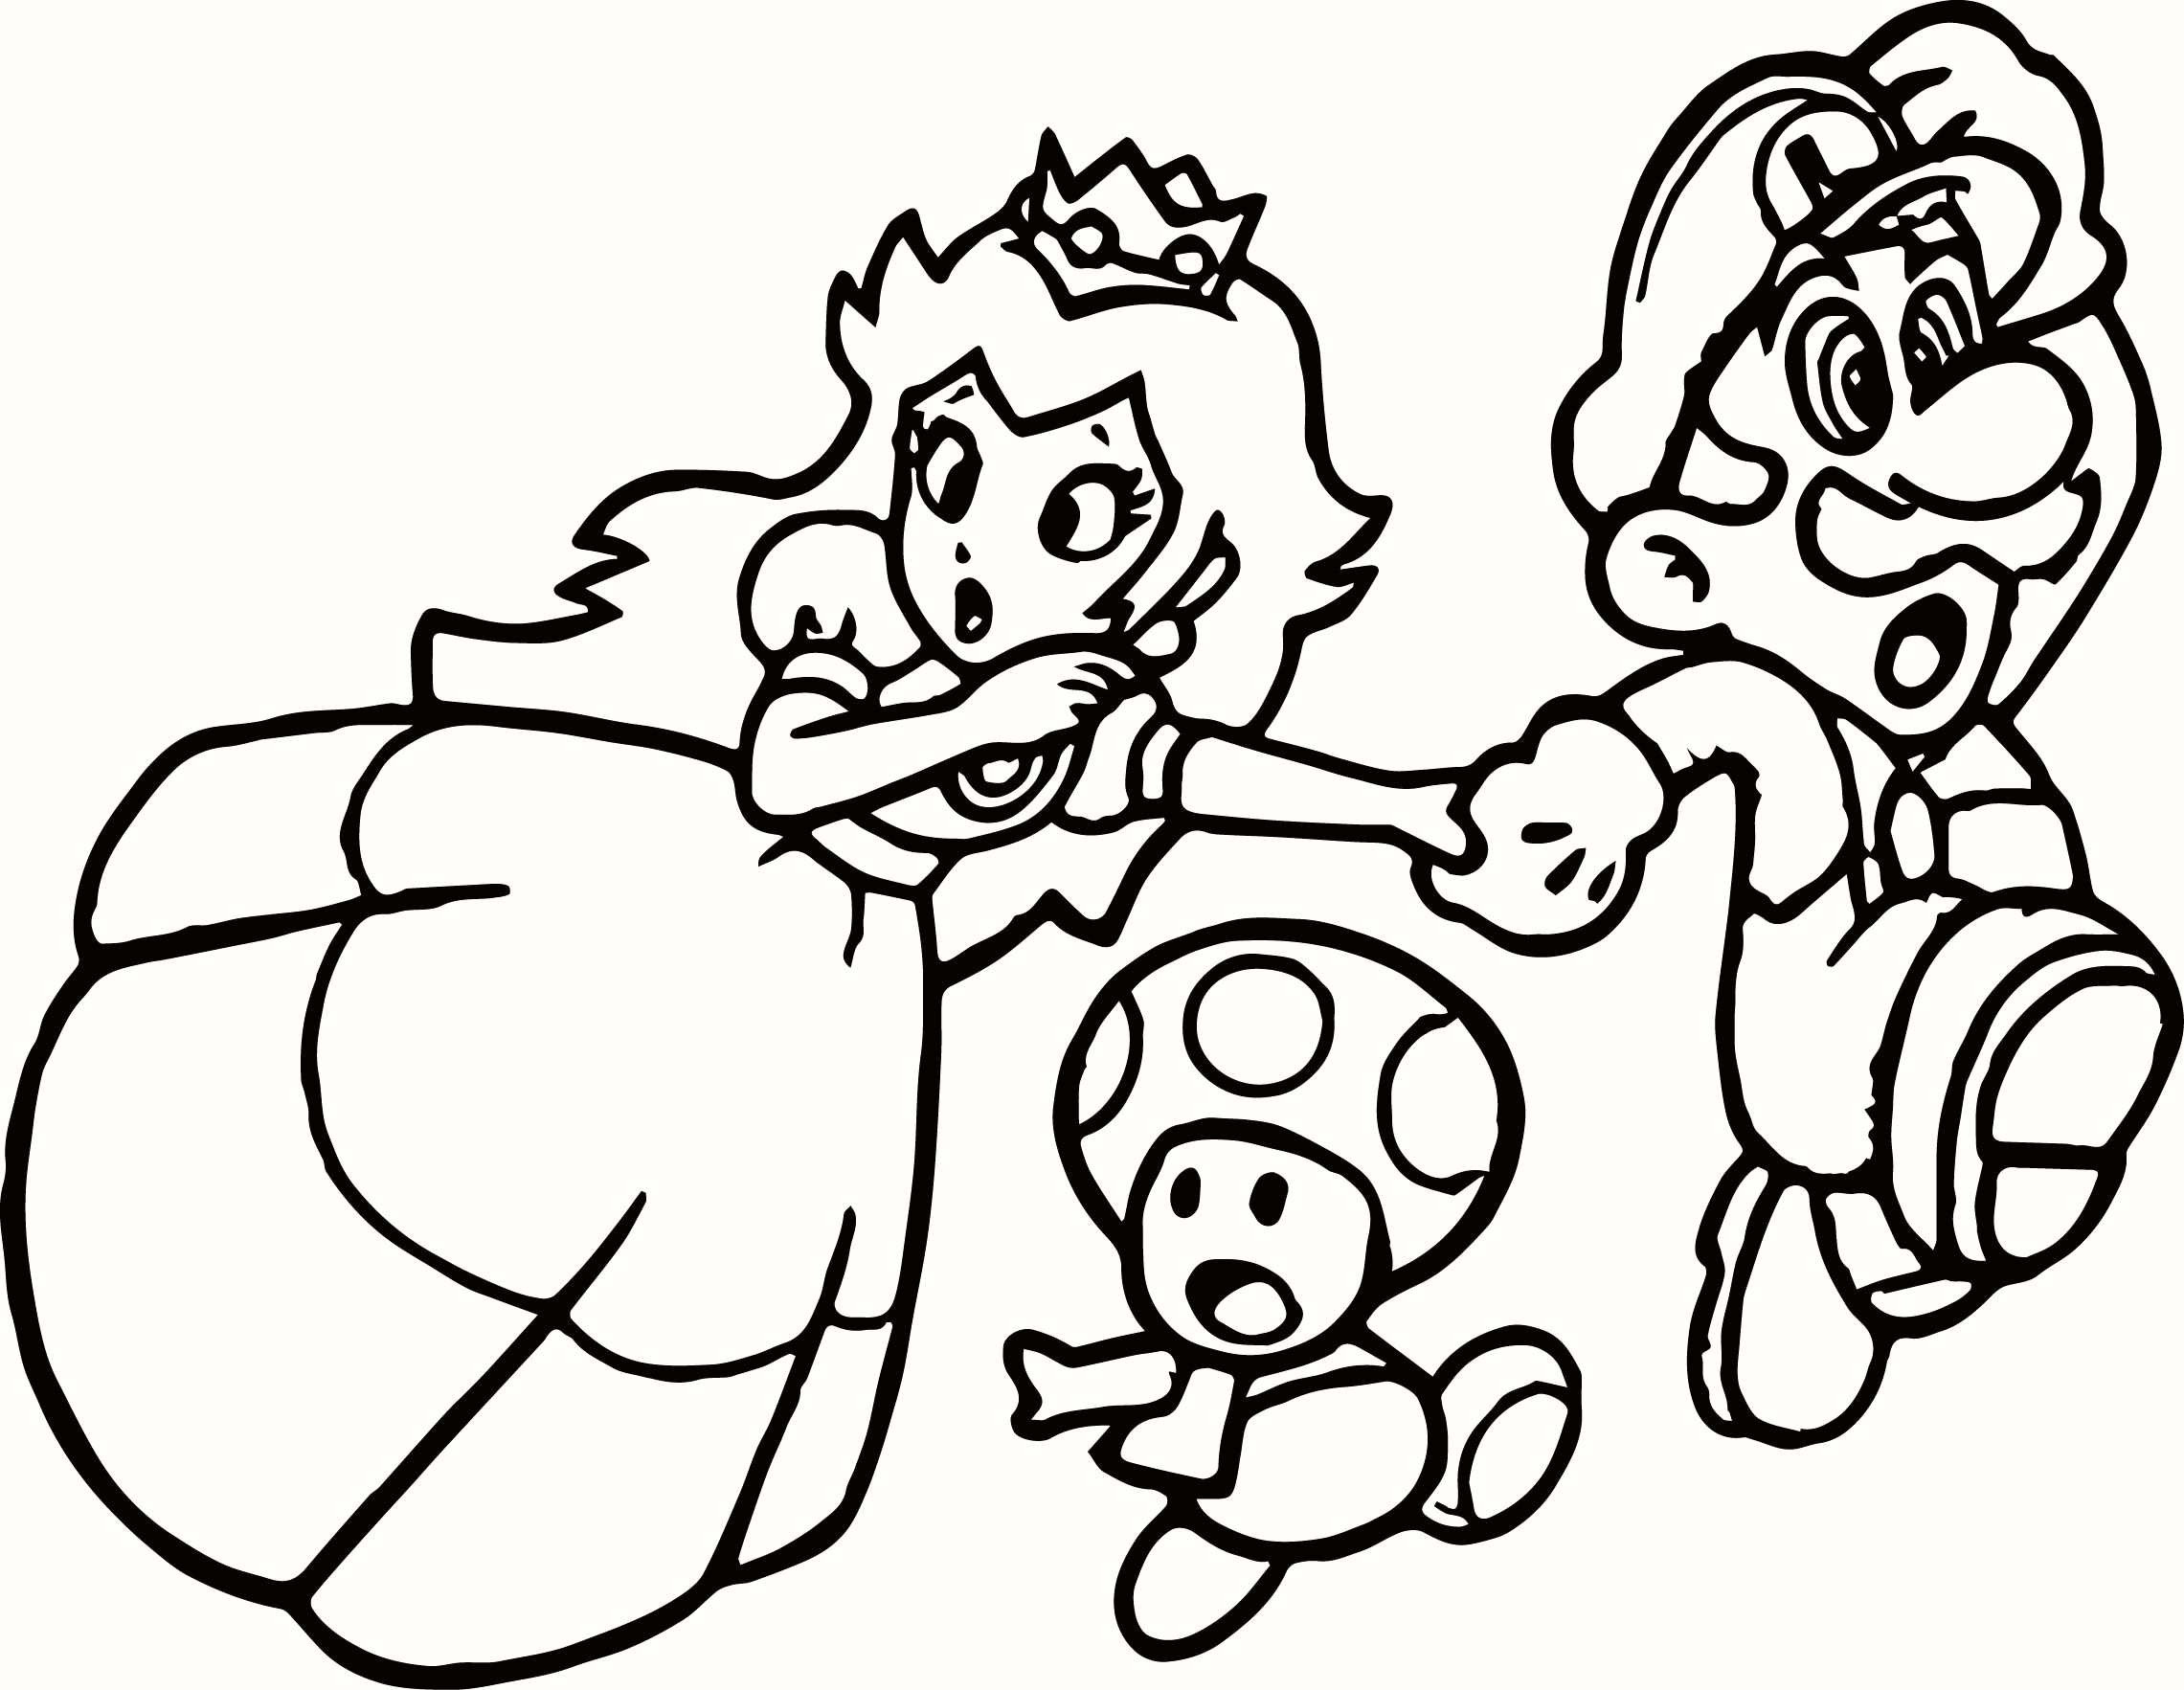 Super Mario Malvorlagen Inspirierend Mario Coloring Pages for Boys Download Ausmalbilder Super Mario Sammlung